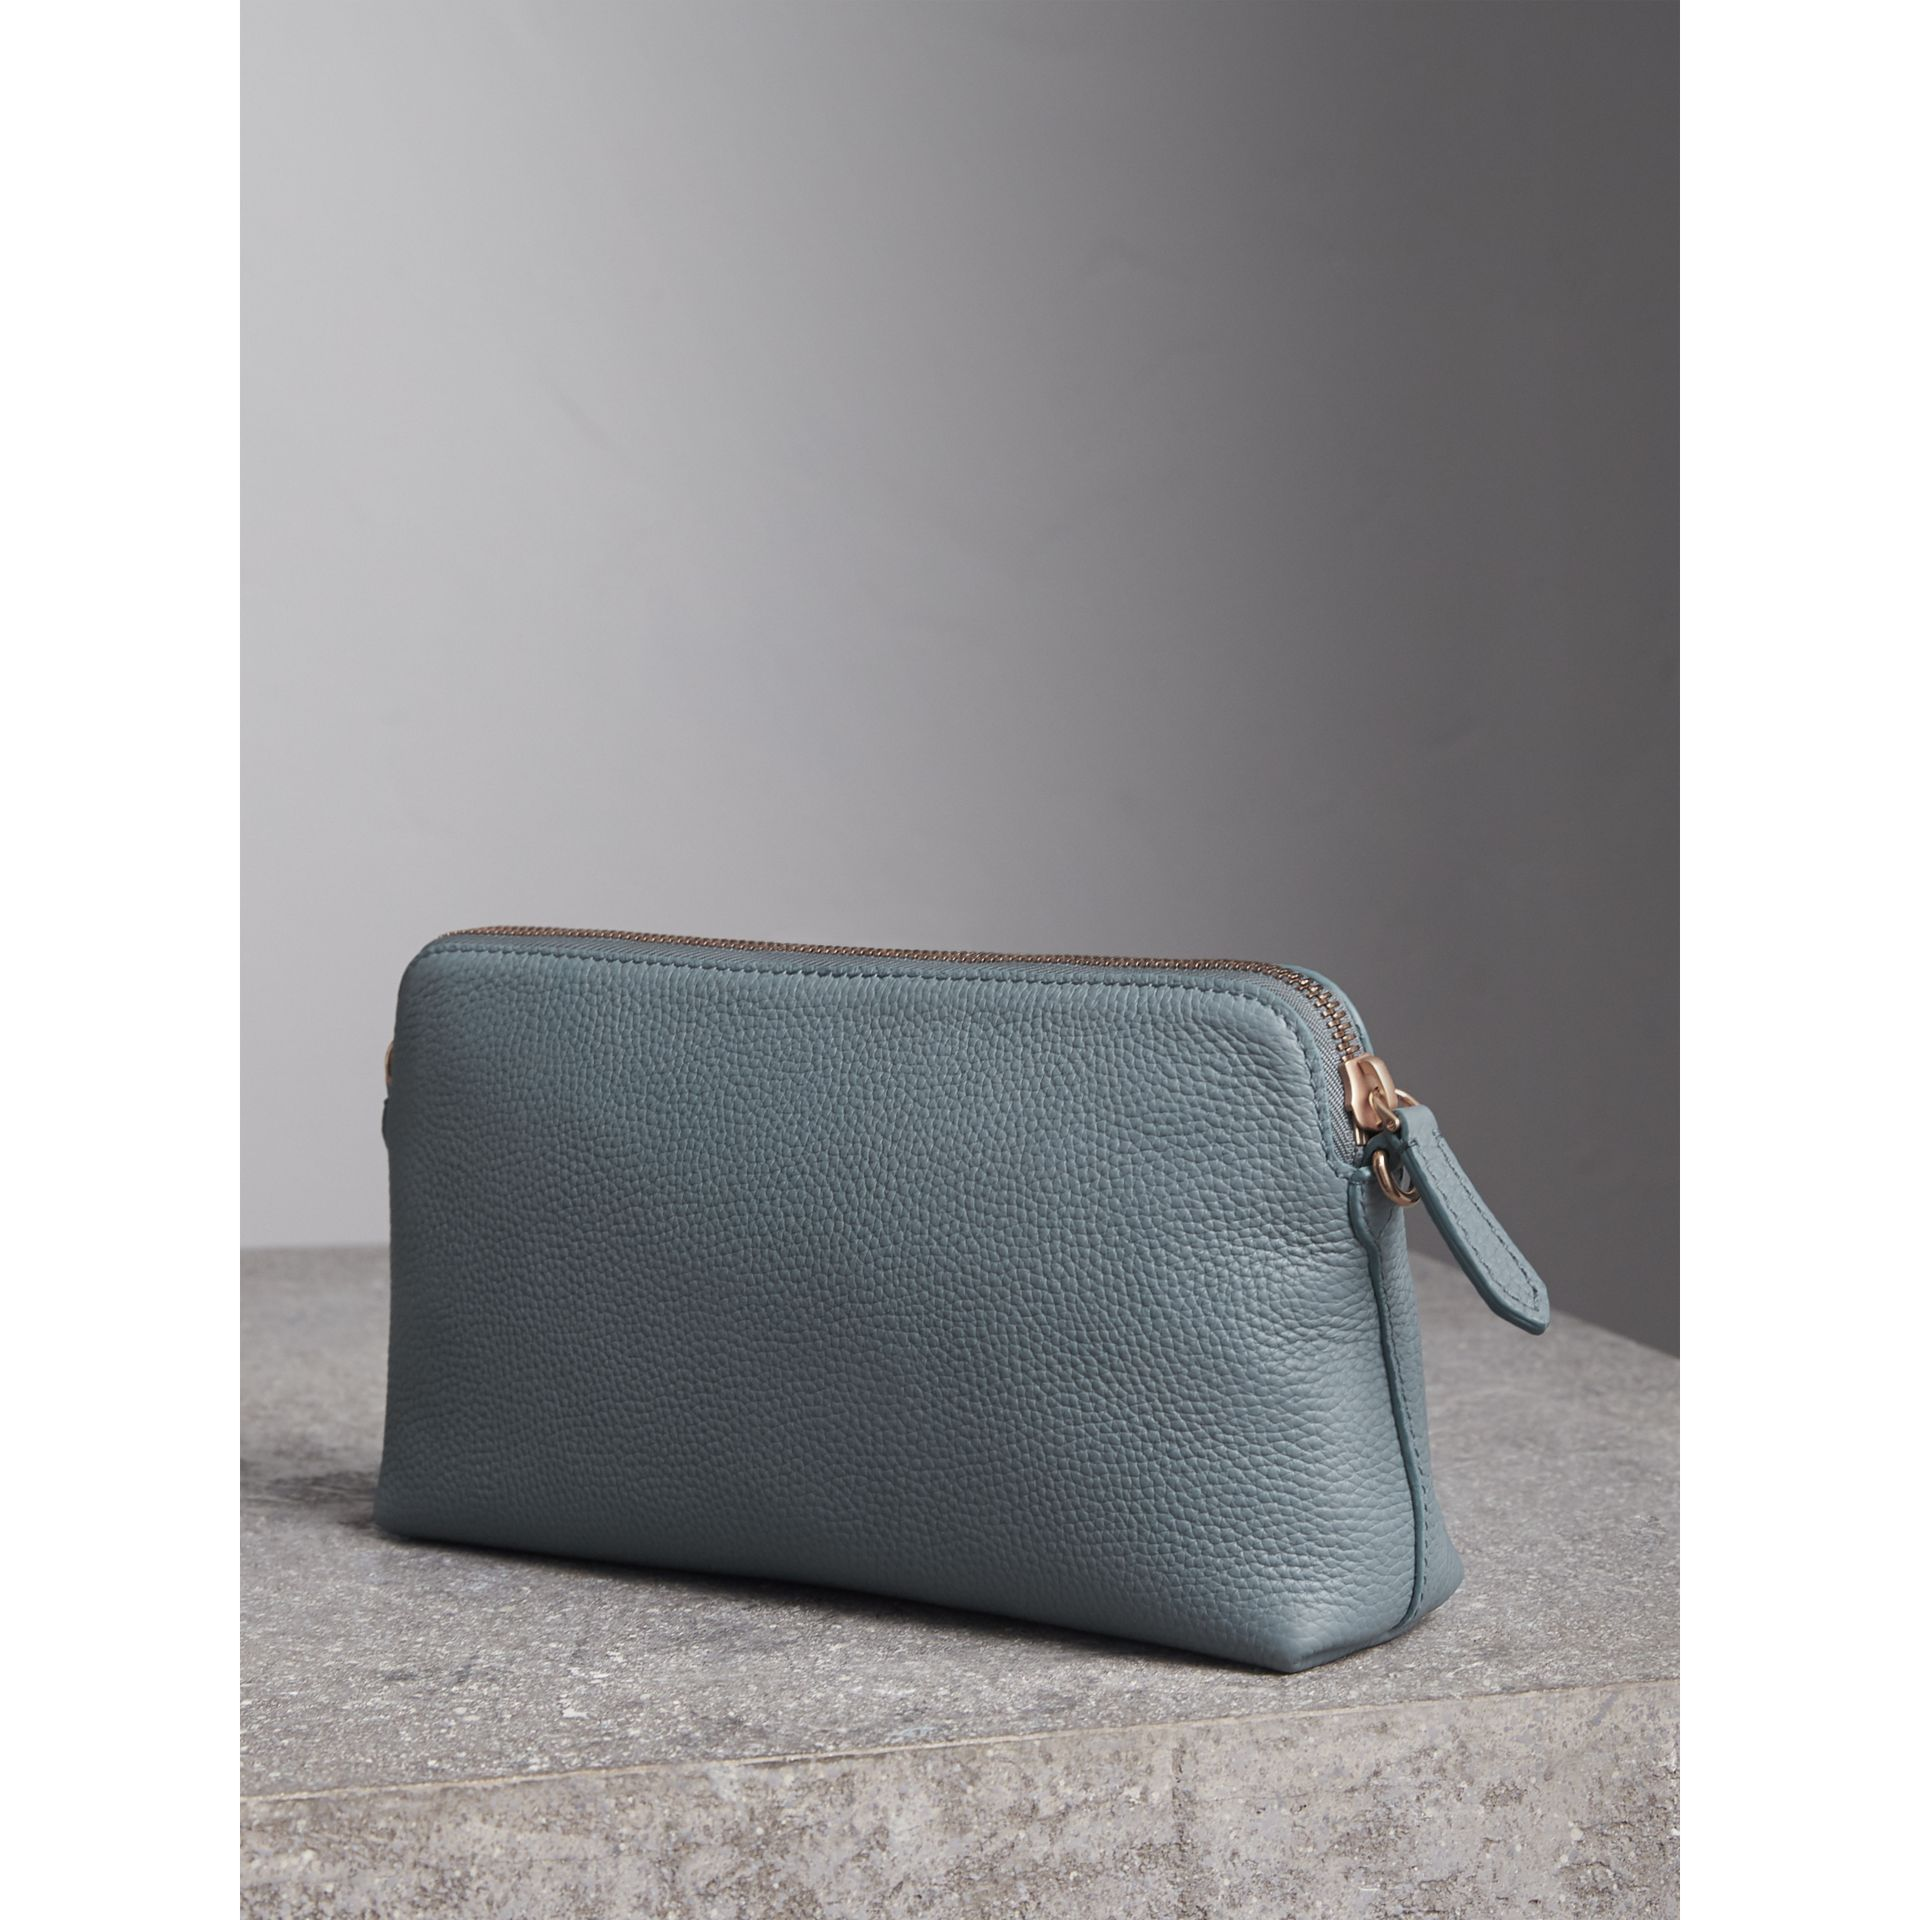 Embossed Leather Clutch Bag in Dusty Teal Blue - Women | Burberry Canada - gallery image 5